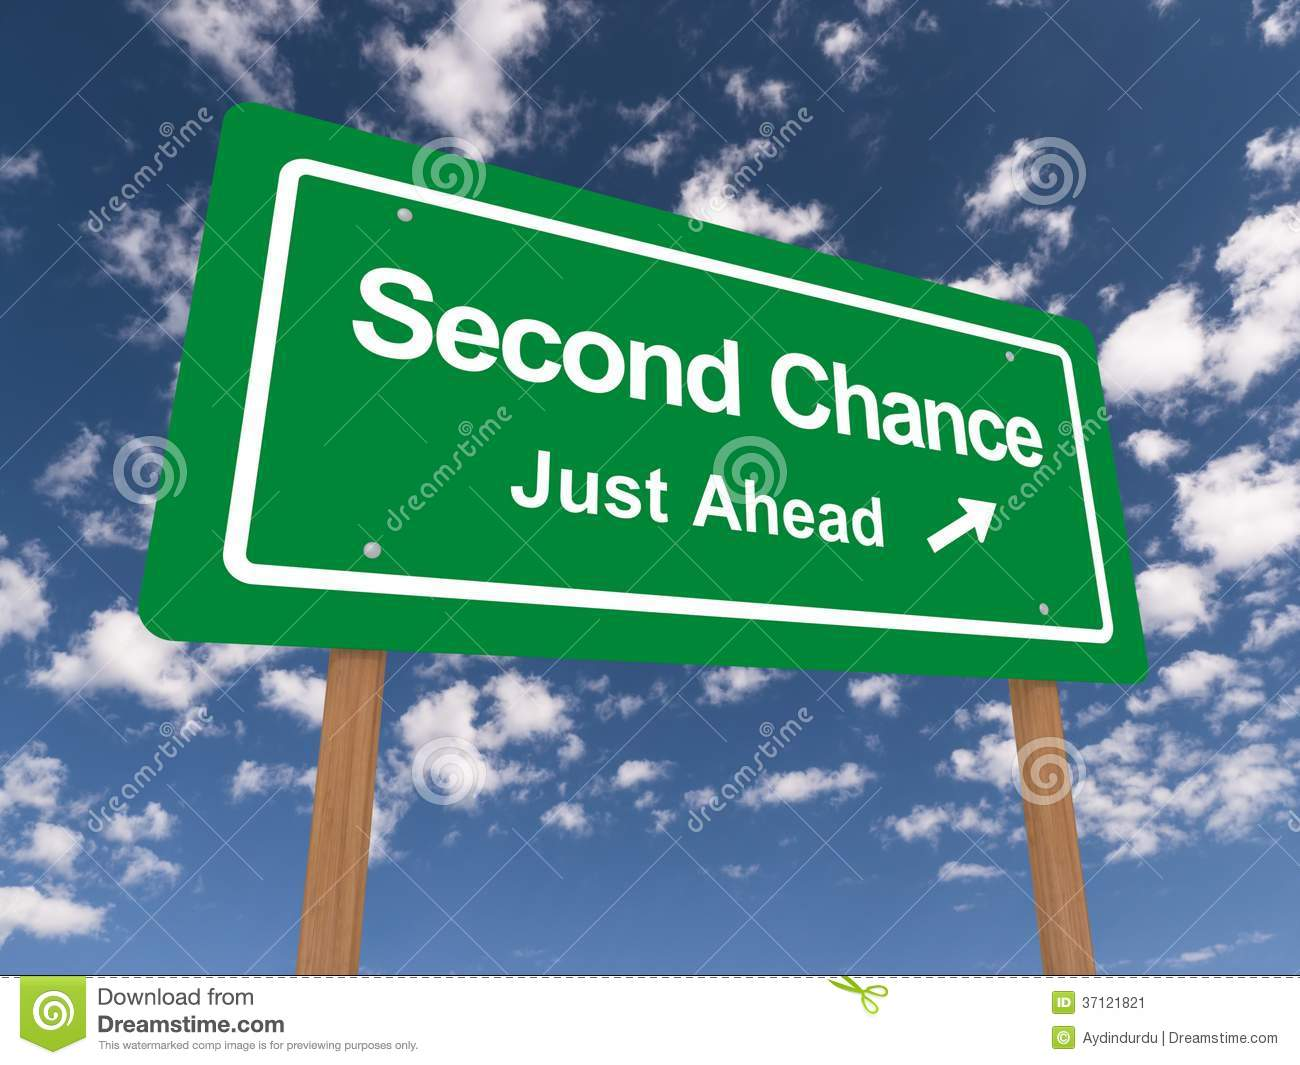 the second chance for phaedrus The objective of 7th speech in the competent communicator manual is to research your topic you are asked to engage and enlighten the audience using anecdotes, facts.